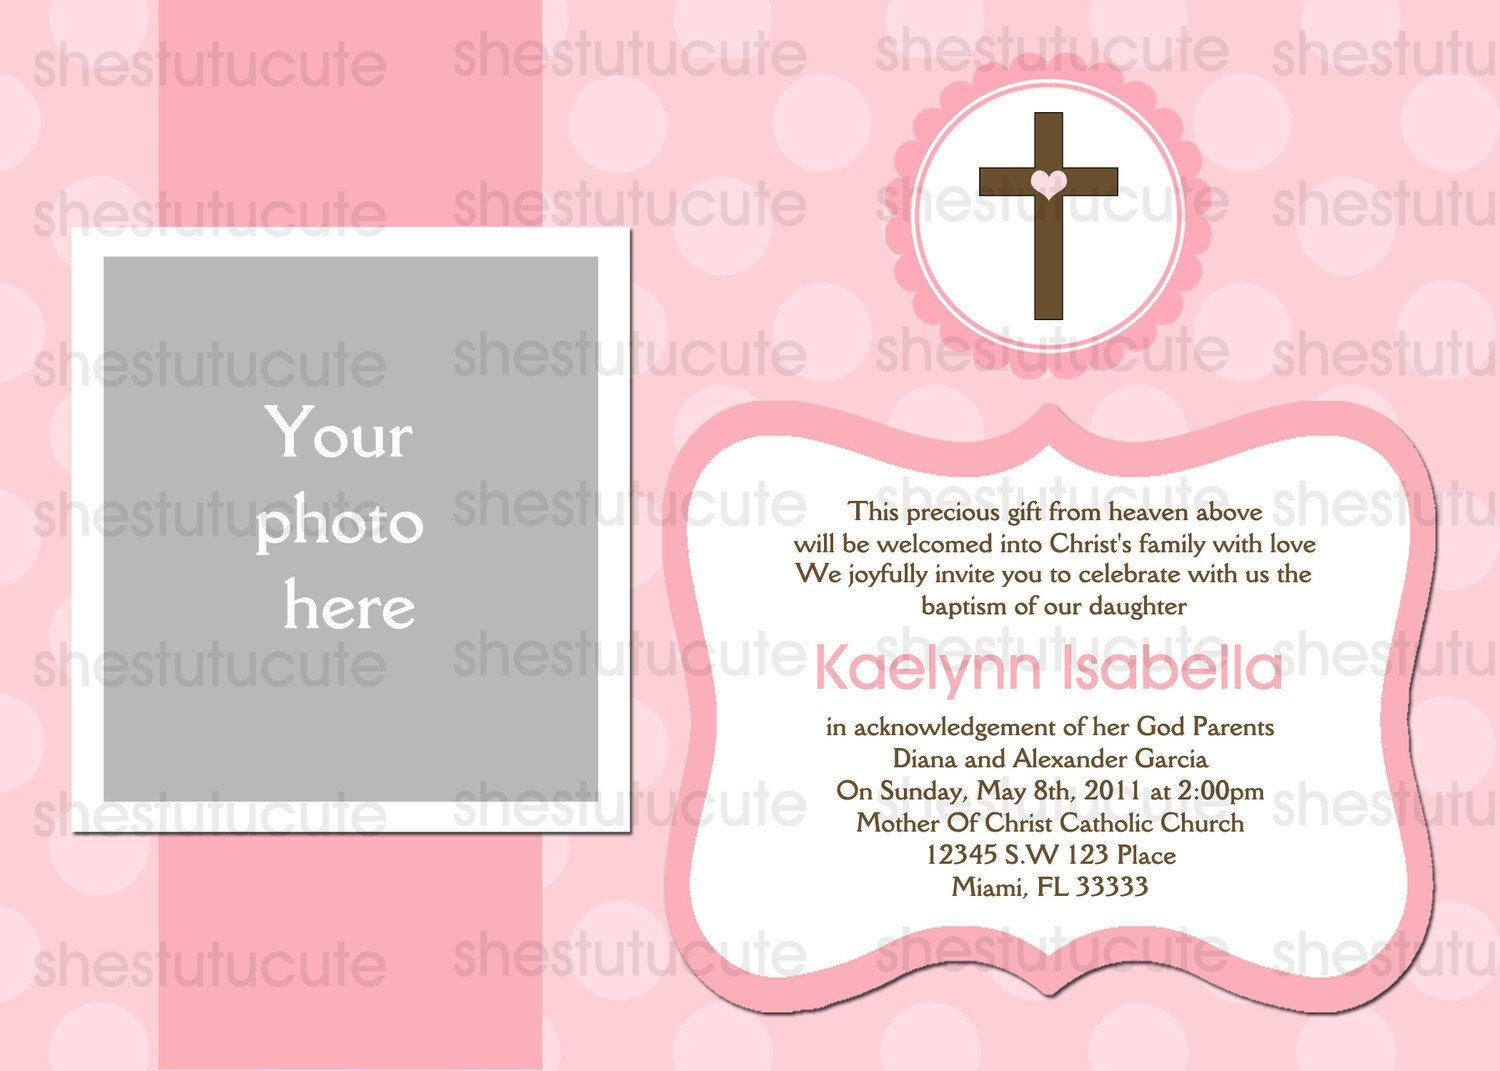 Girls baptism invitations digital file by shestutucutebtq on etsy girls baptism invitations digital file by shestutucutebtq on etsy xzuyte3w stopboris Gallery